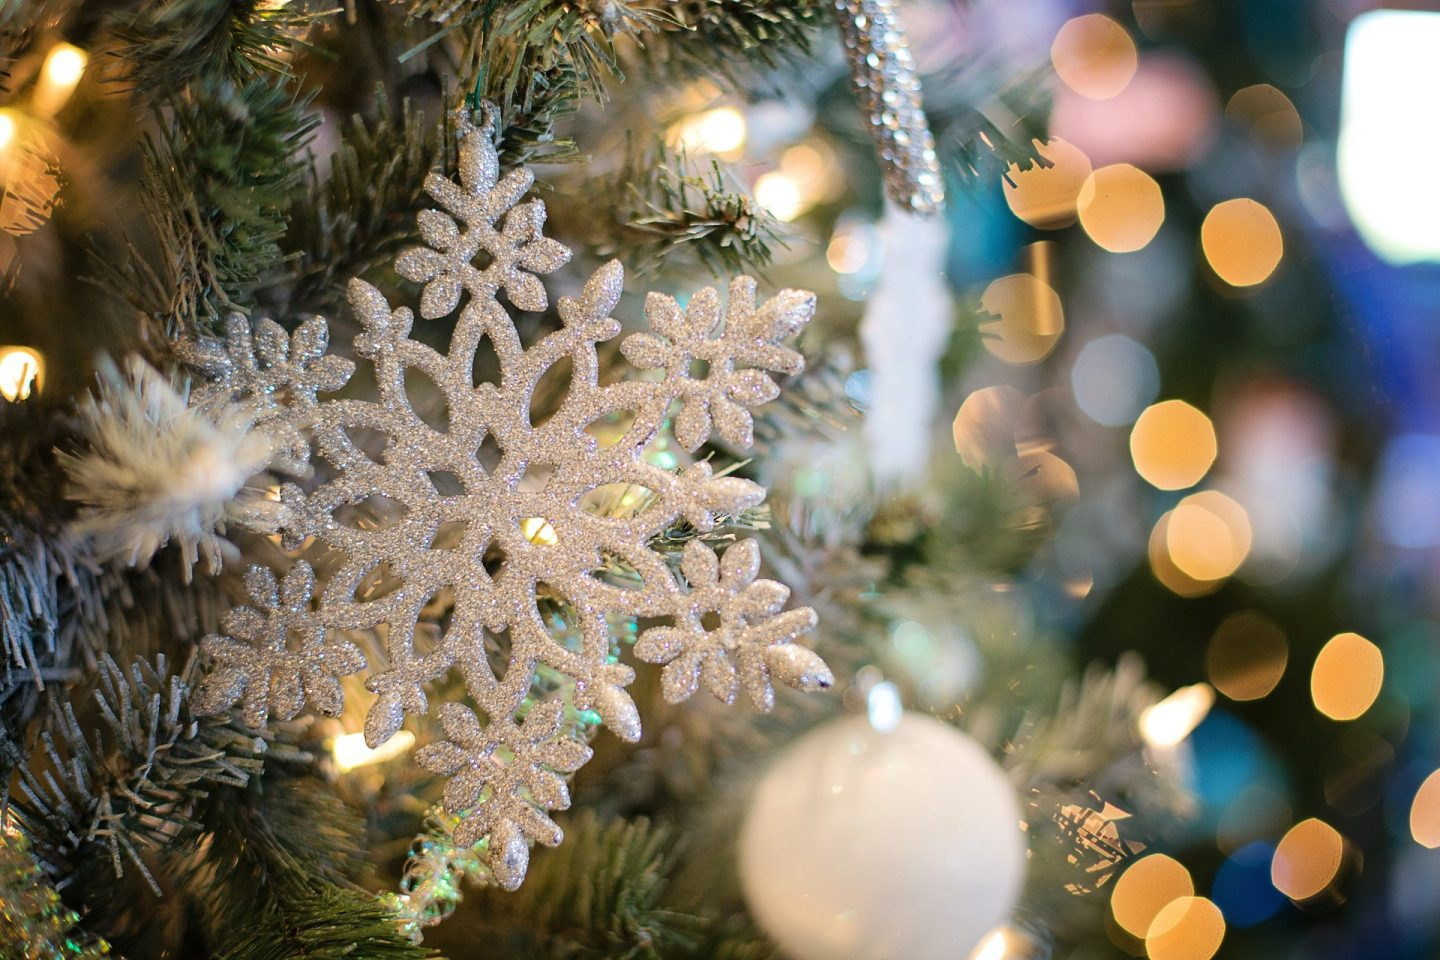 A close up of the branches of a Christmas tree with white snowflakes and baubles